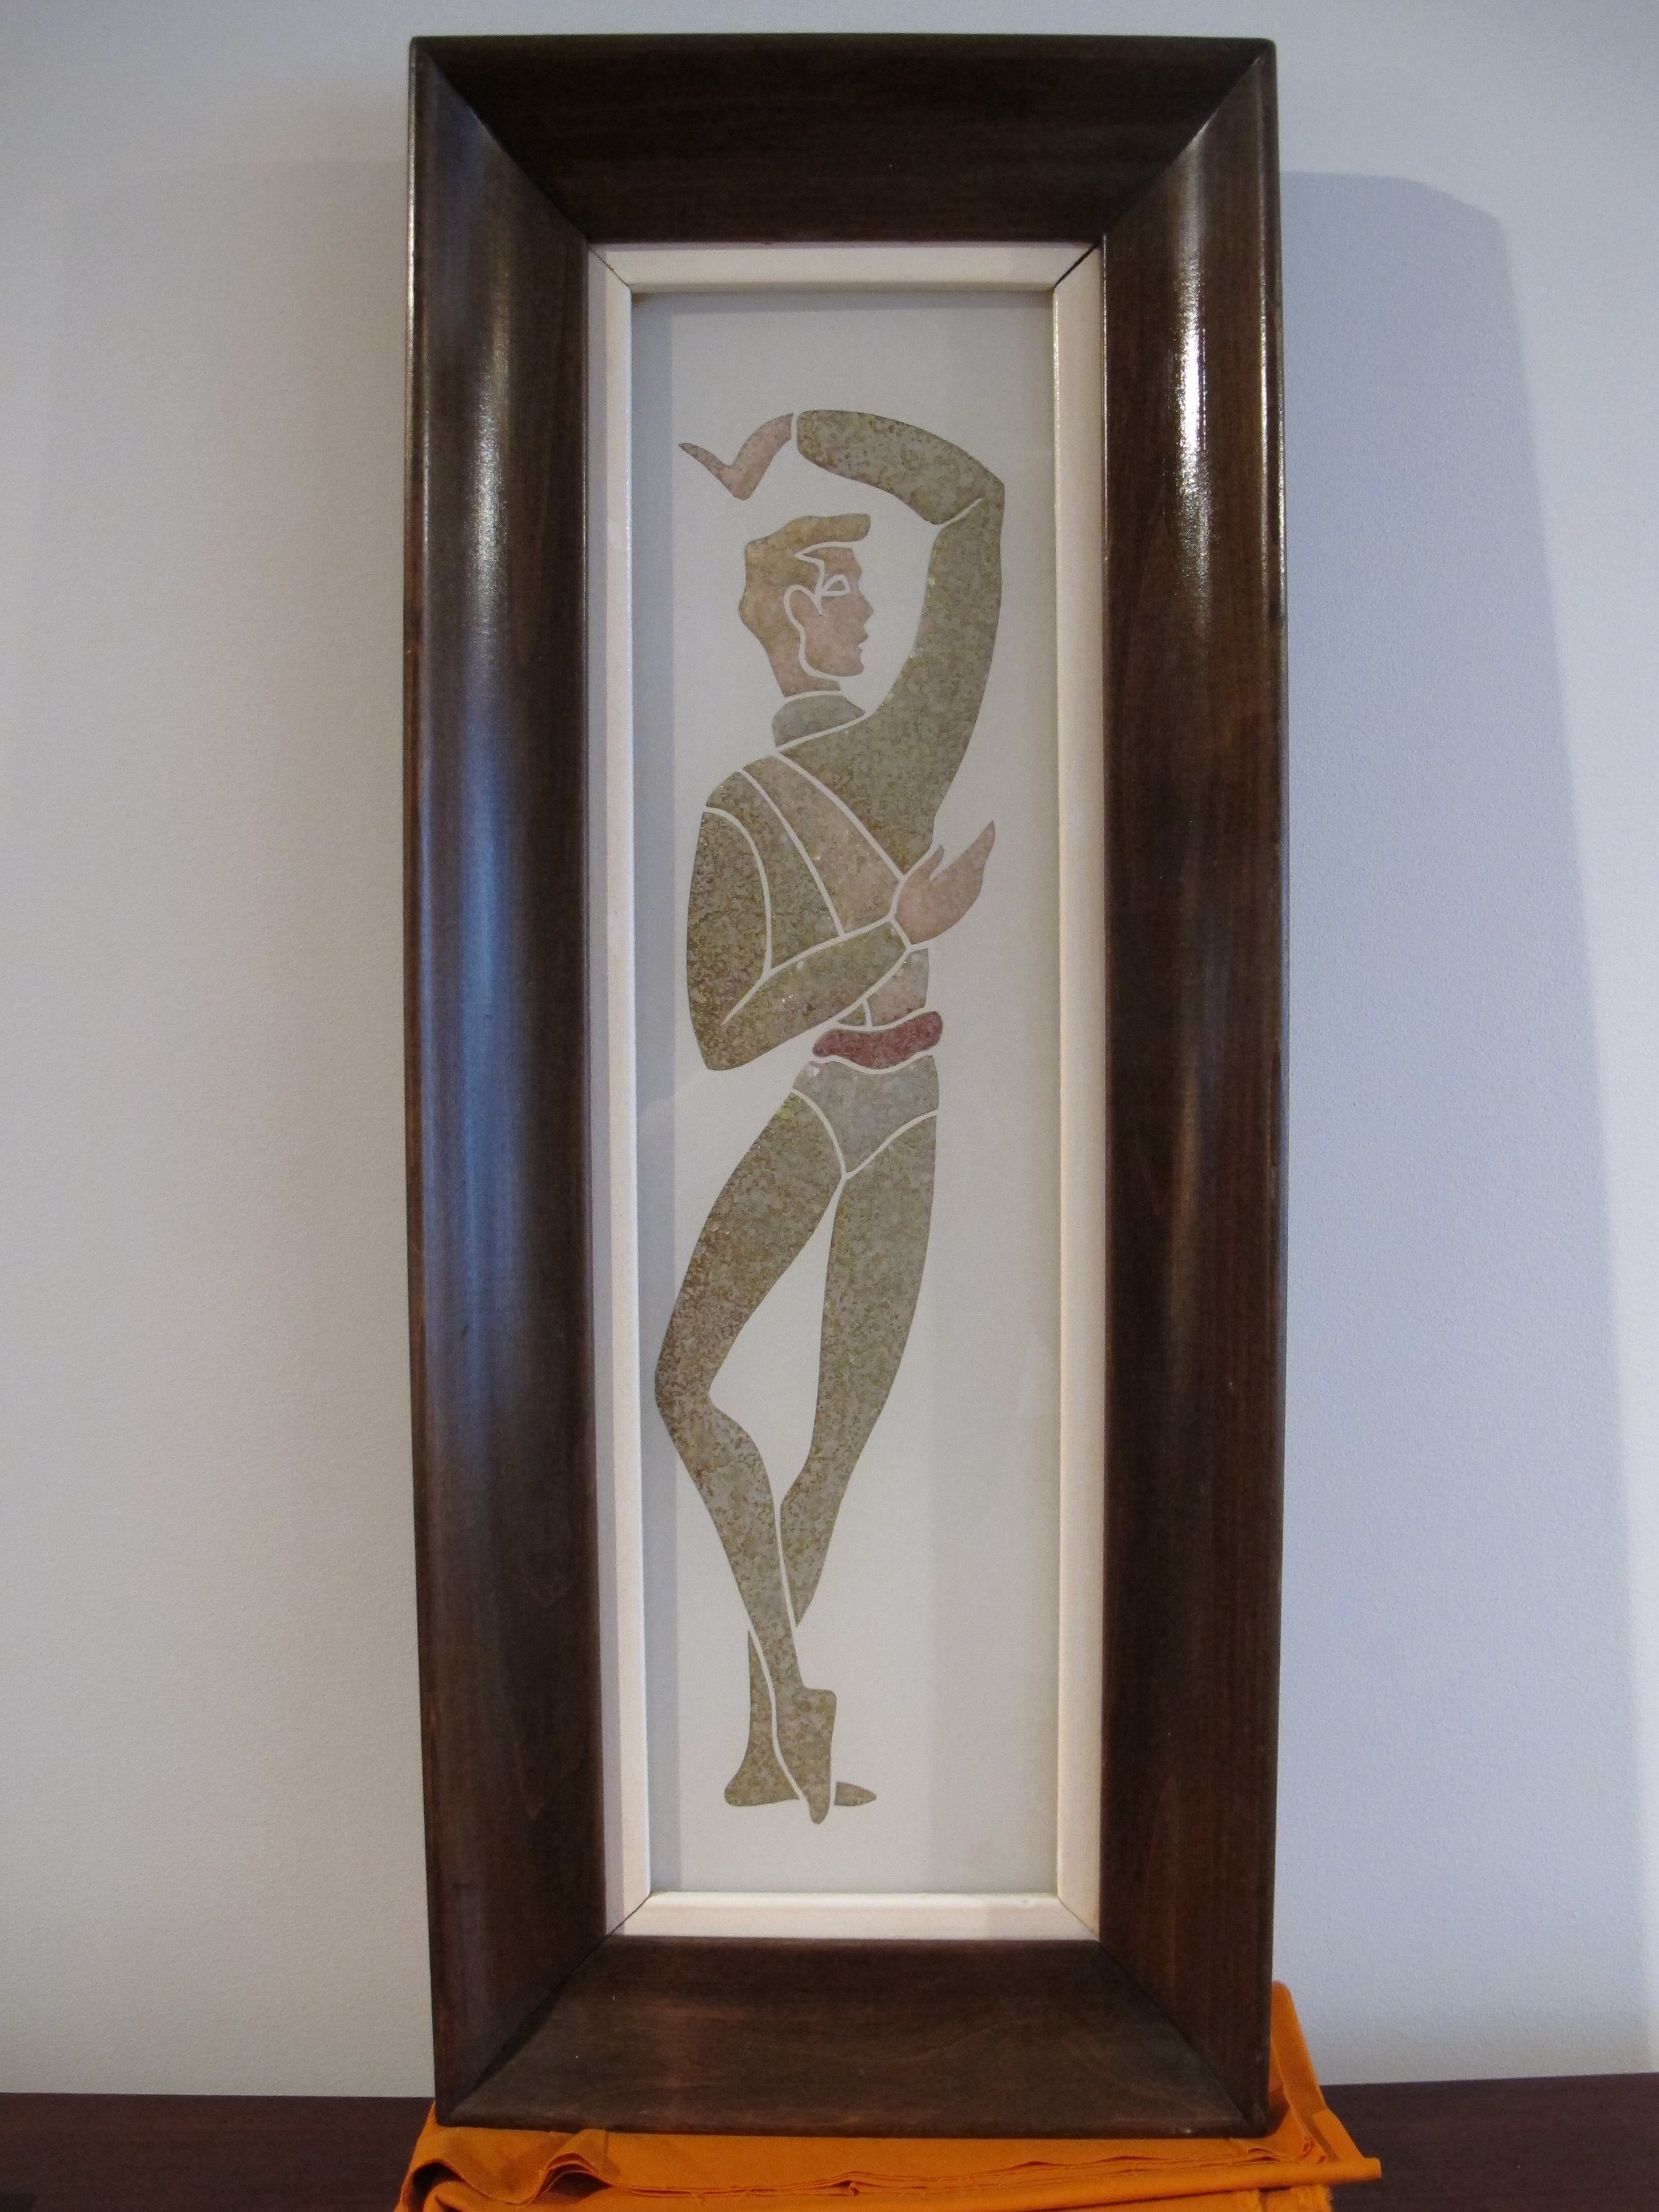 MID CENTURY PEBBLE GLASS MOSIAC DANCER